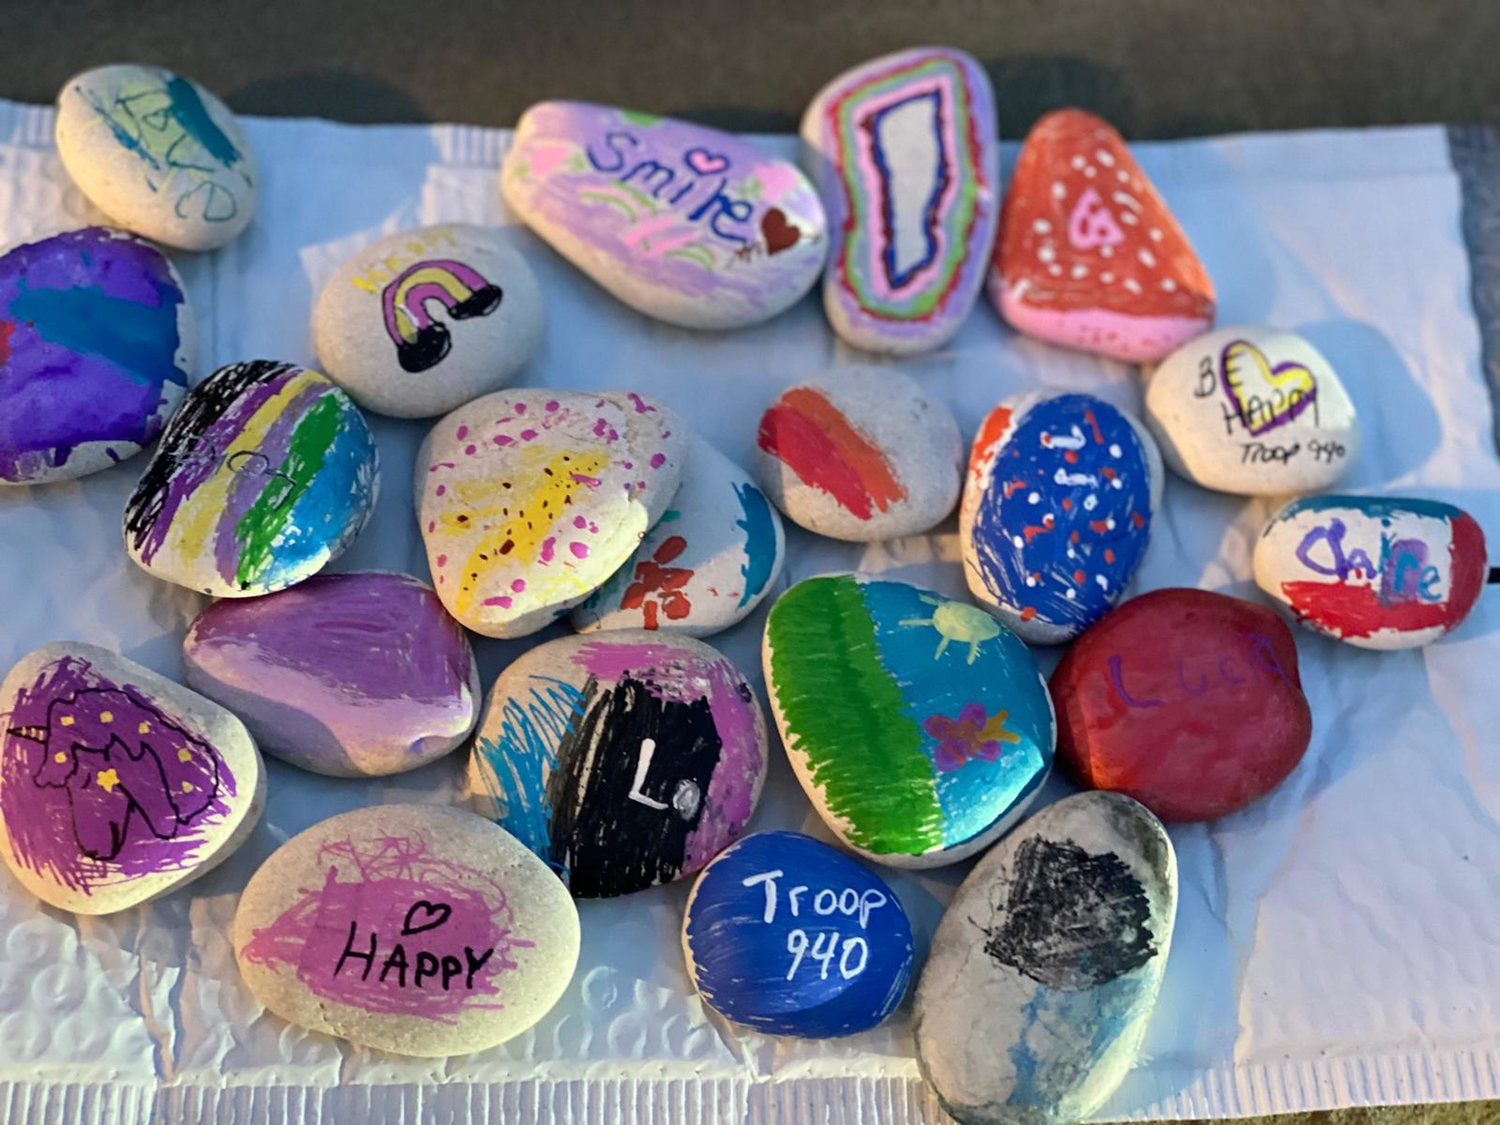 The rocks feature bright colors, eye-catching designs, positive messages and inspirational words.